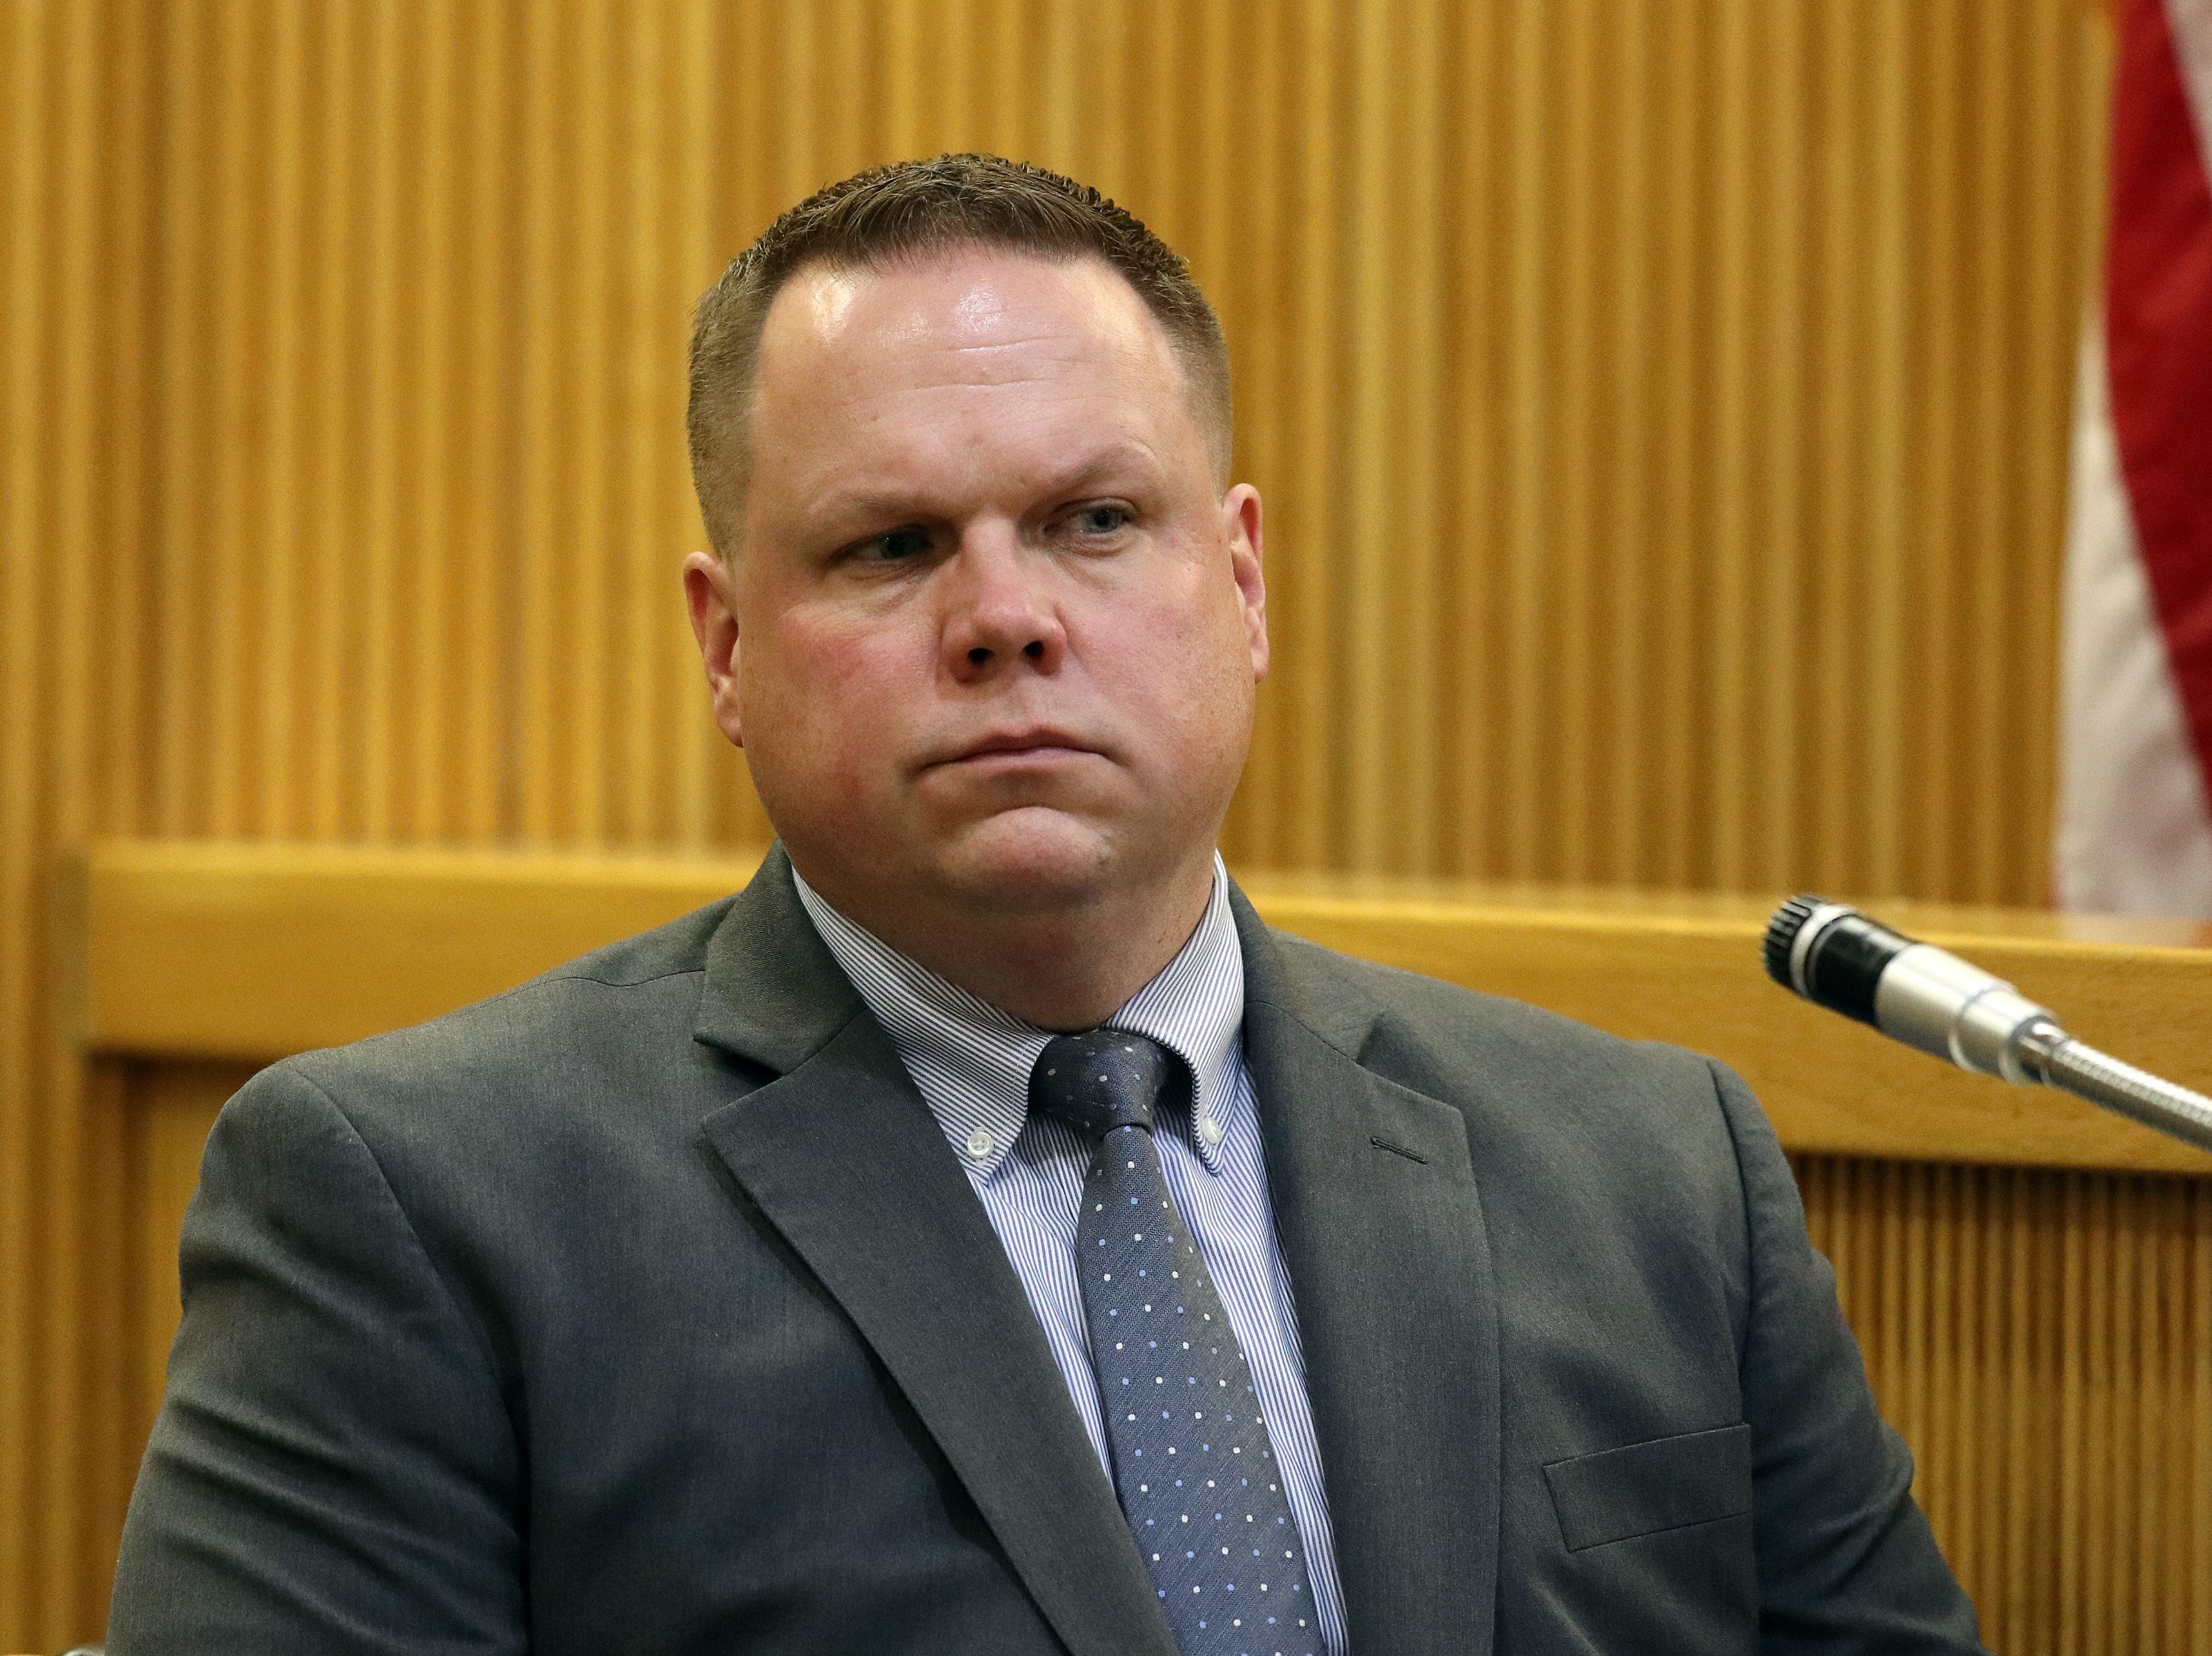 Detective SGT Ryan Muller of the Monmouth County Prosecutor's Office, testifies during the trial of Liam McAtasney, who is charged with the murder of former high school classmate, Sarah Stern, before Superior Court Judge Richard W. English at the Monmouth County Courthouse in Freehold, NJ Wednesday, February 6, 2019.